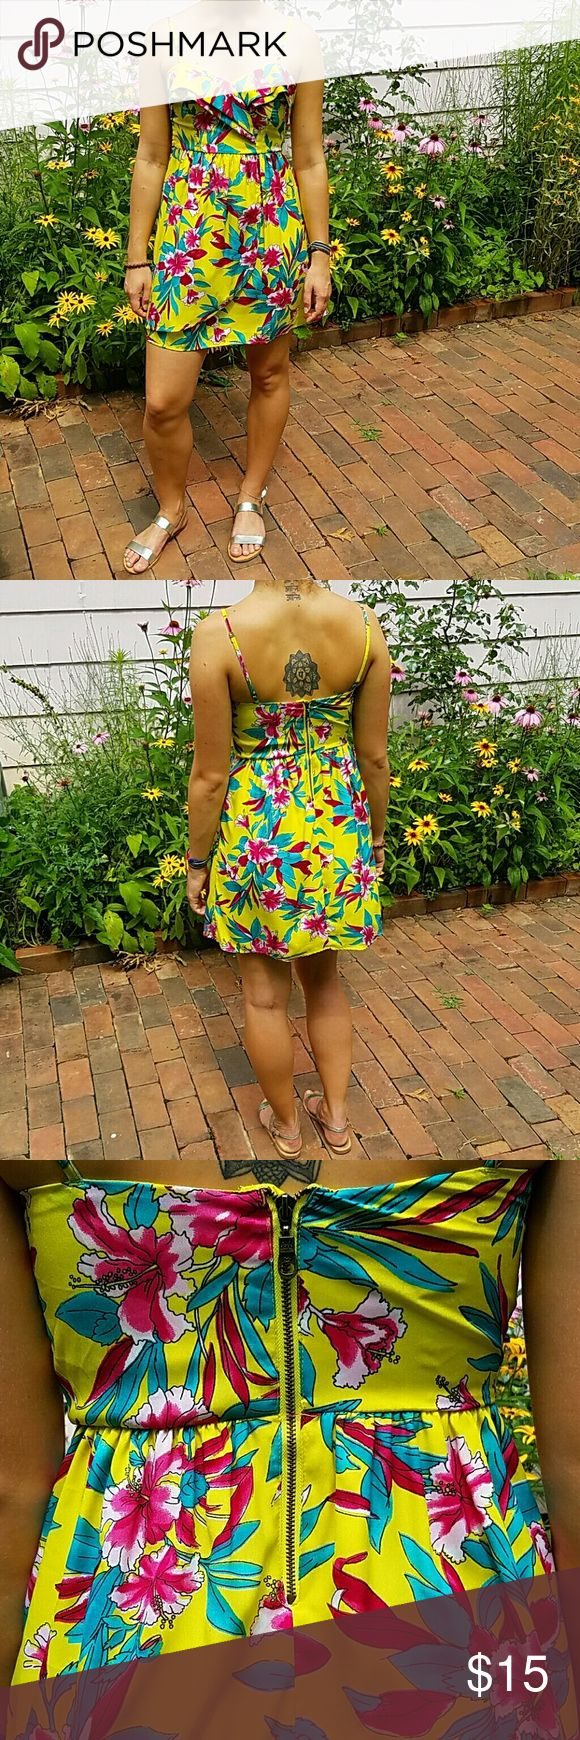 Billabong sun dress This bright Hawaiian print dress is great for hot summer days. Thin (but not see-through) fabric keeps you looking cool and cute!  Adjustable straps, exposed rear zip closure Comfortably fits sizes 2-4 Billabong Dresses Mini